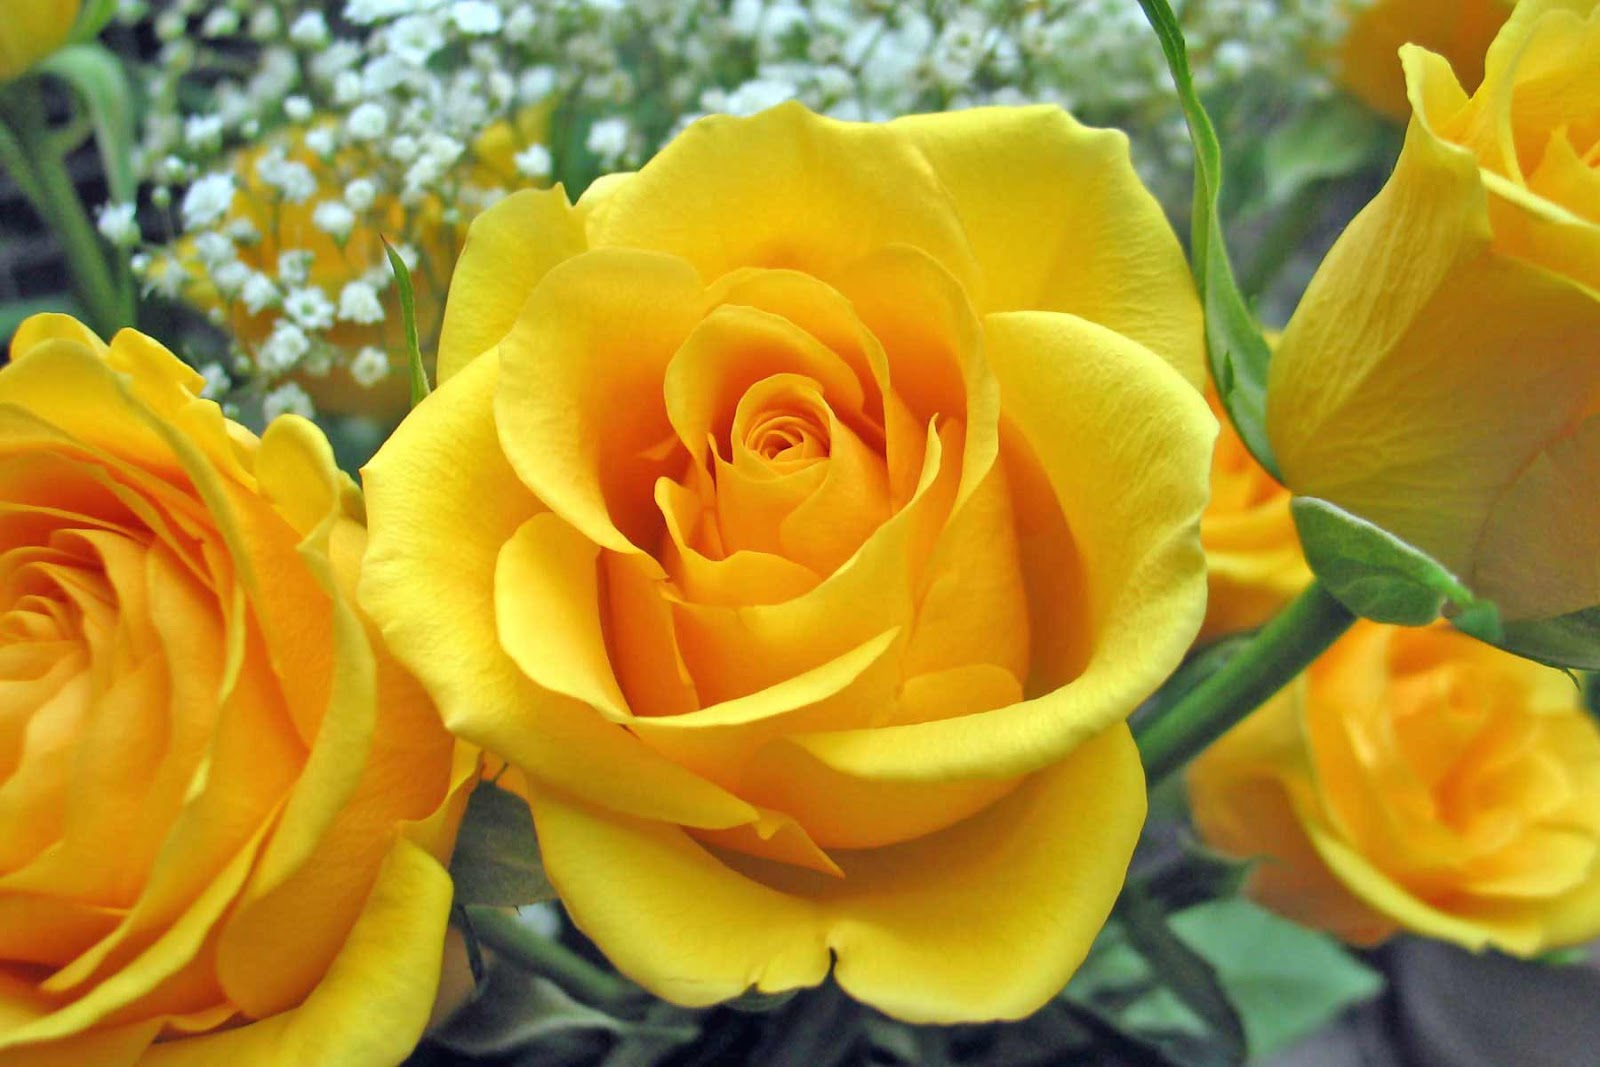 Beauty flower yellow rose collection of beautiful flowers 2013 nature of yellow flowers yellow rose collection 2013 flowers wallpapers images of beautiful flowers path of yellow rose izmirmasajfo